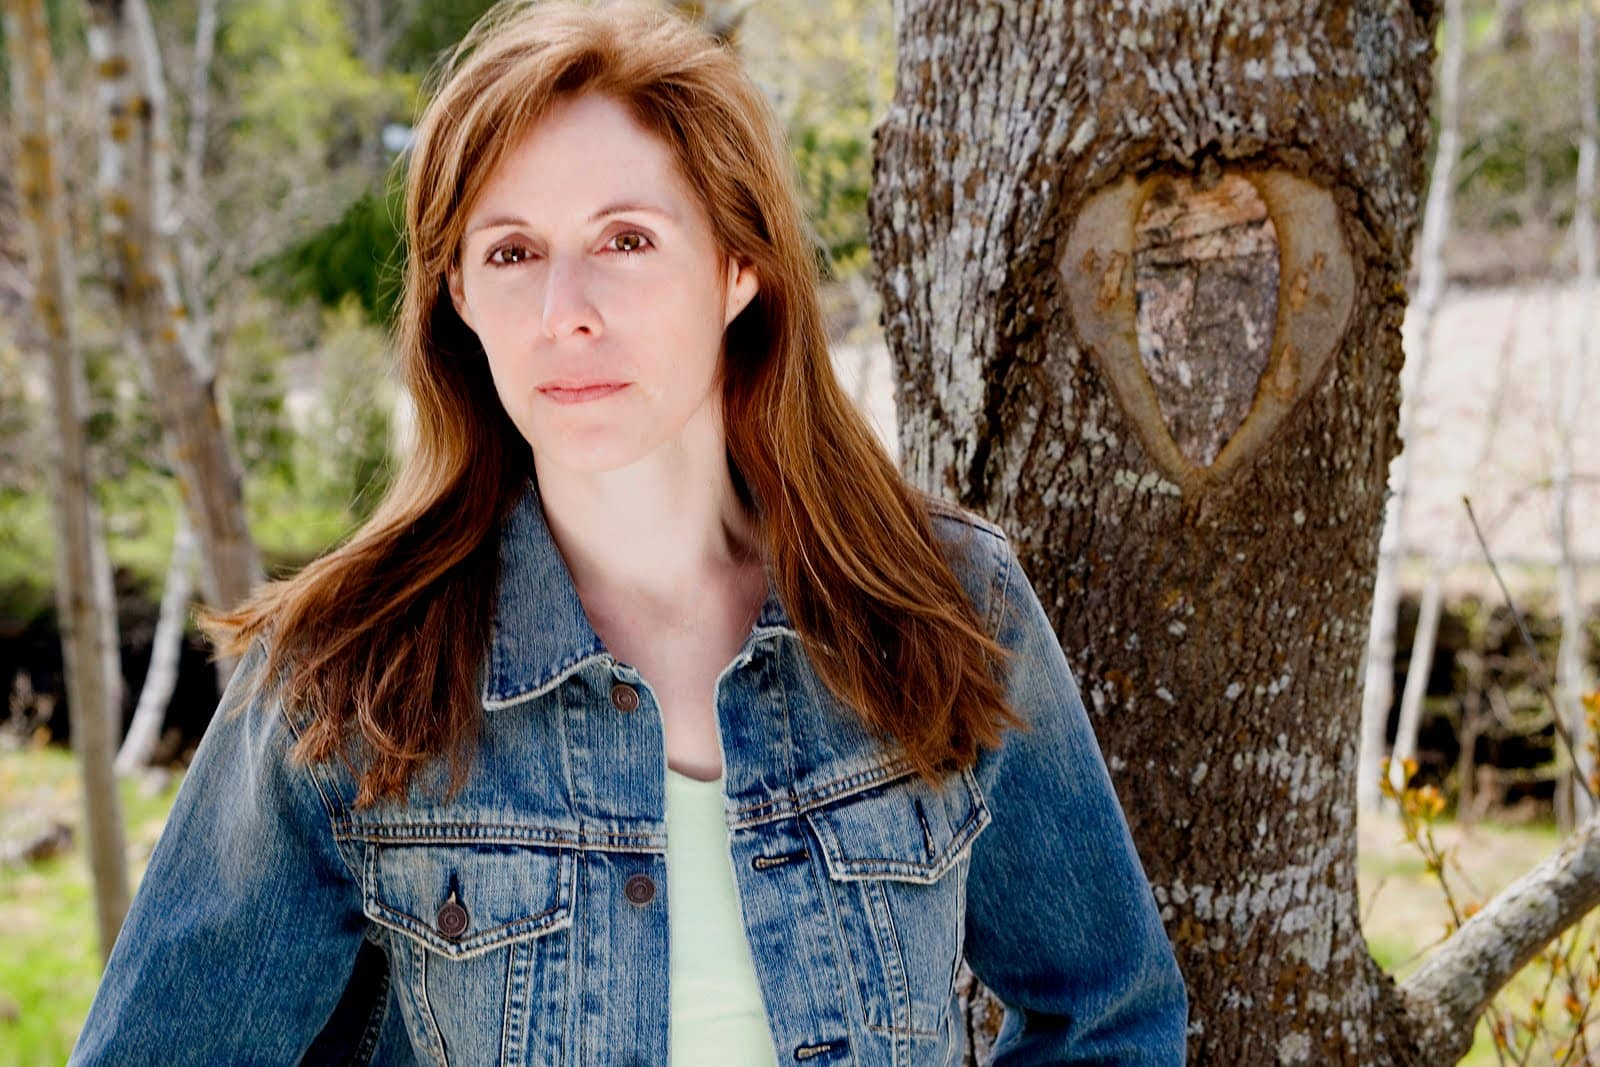 Laurie Halse Anderson To Come To Mclean Amp Eakin Mynorth Com